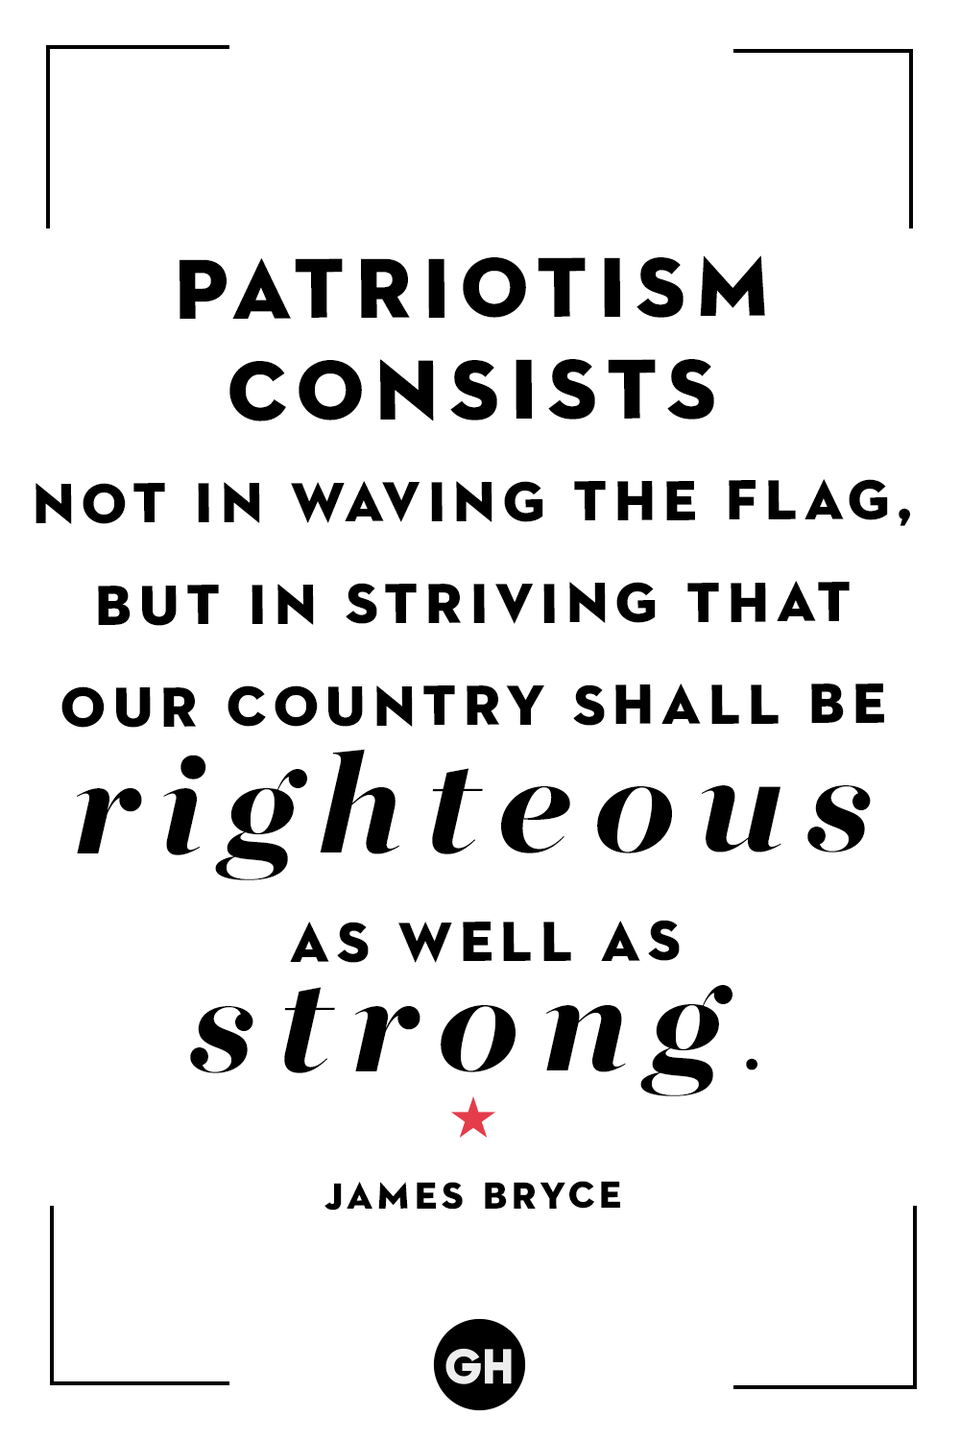 <p>Patriotism consists not in waving the flag, but striving that our country shall be righteous as well as strong.</p>